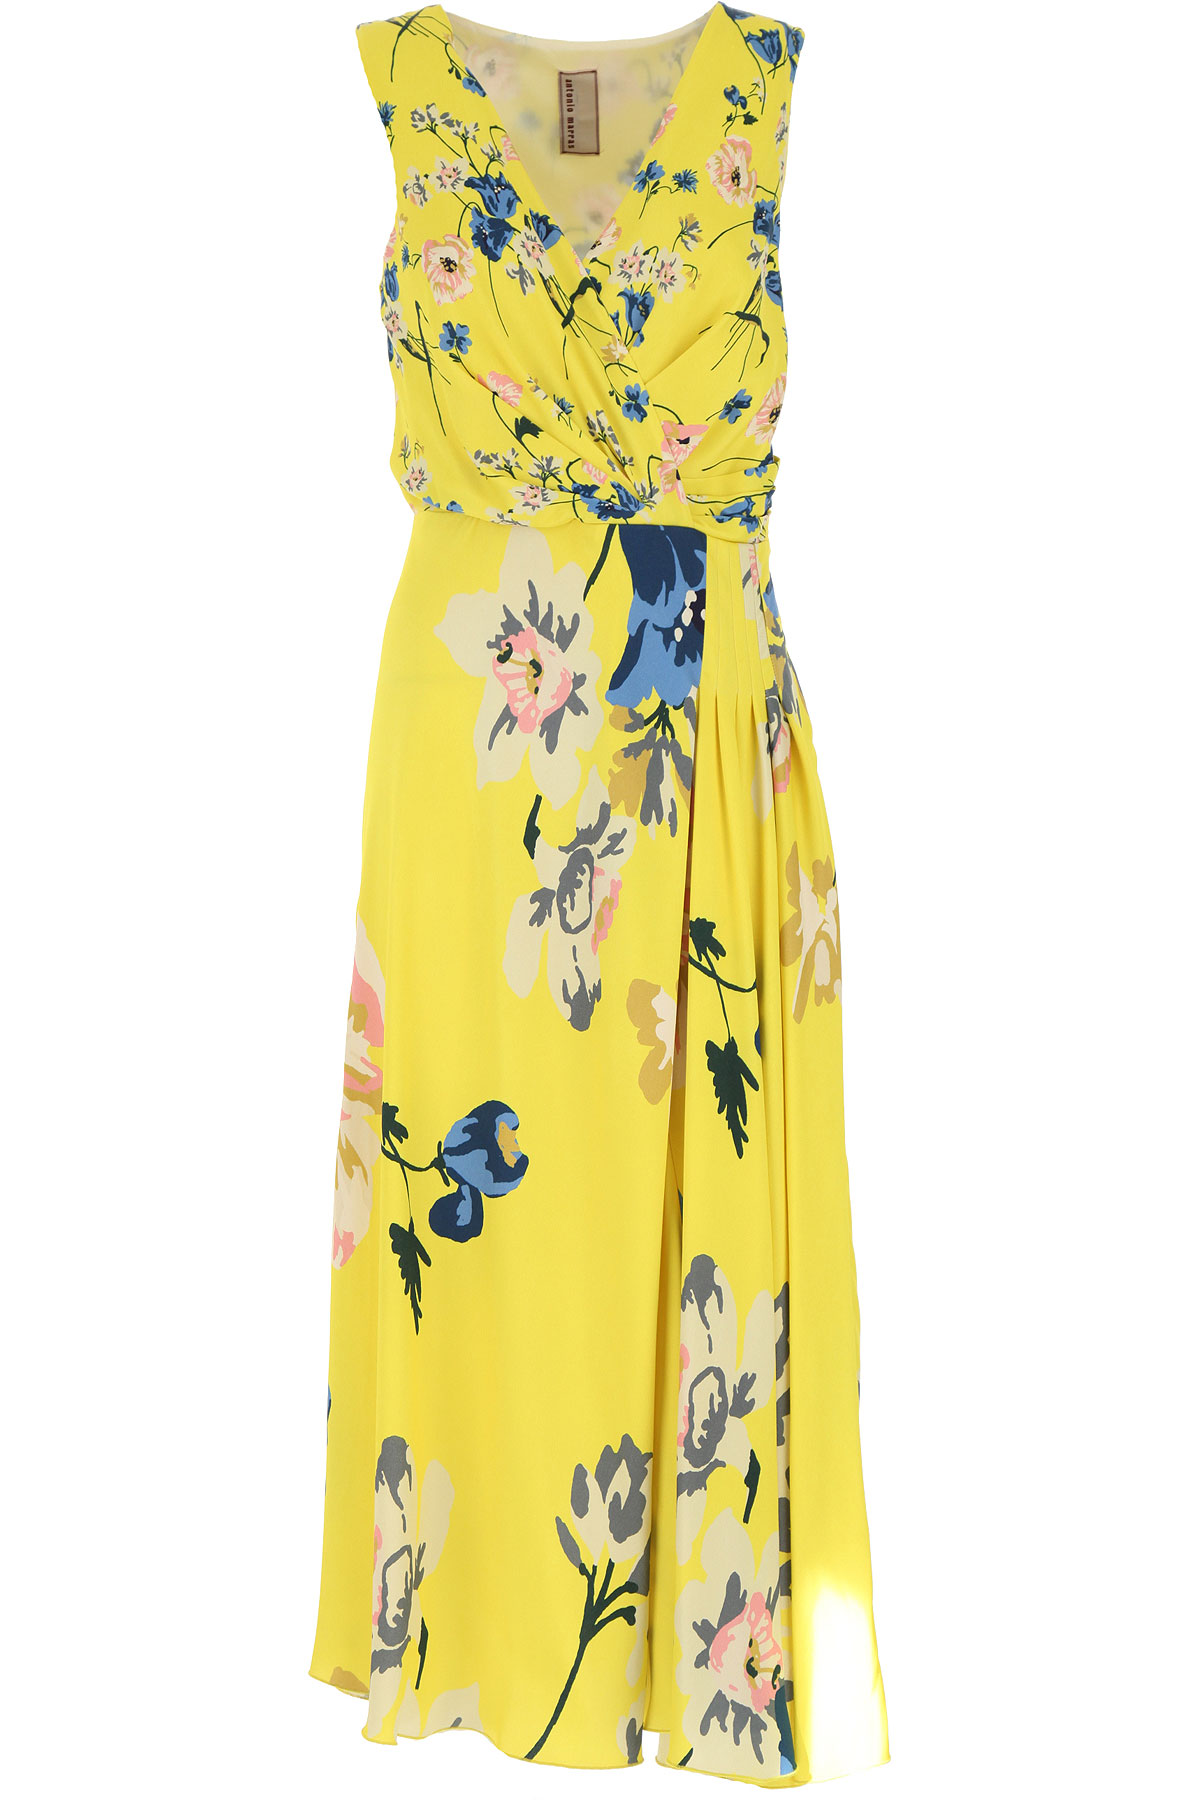 Antonio Marras Dress for Women, Evening Cocktail Party On Sale, Yellow, Viscose, 2019, 1 (S - 40/42) 2 (M - 42/44)